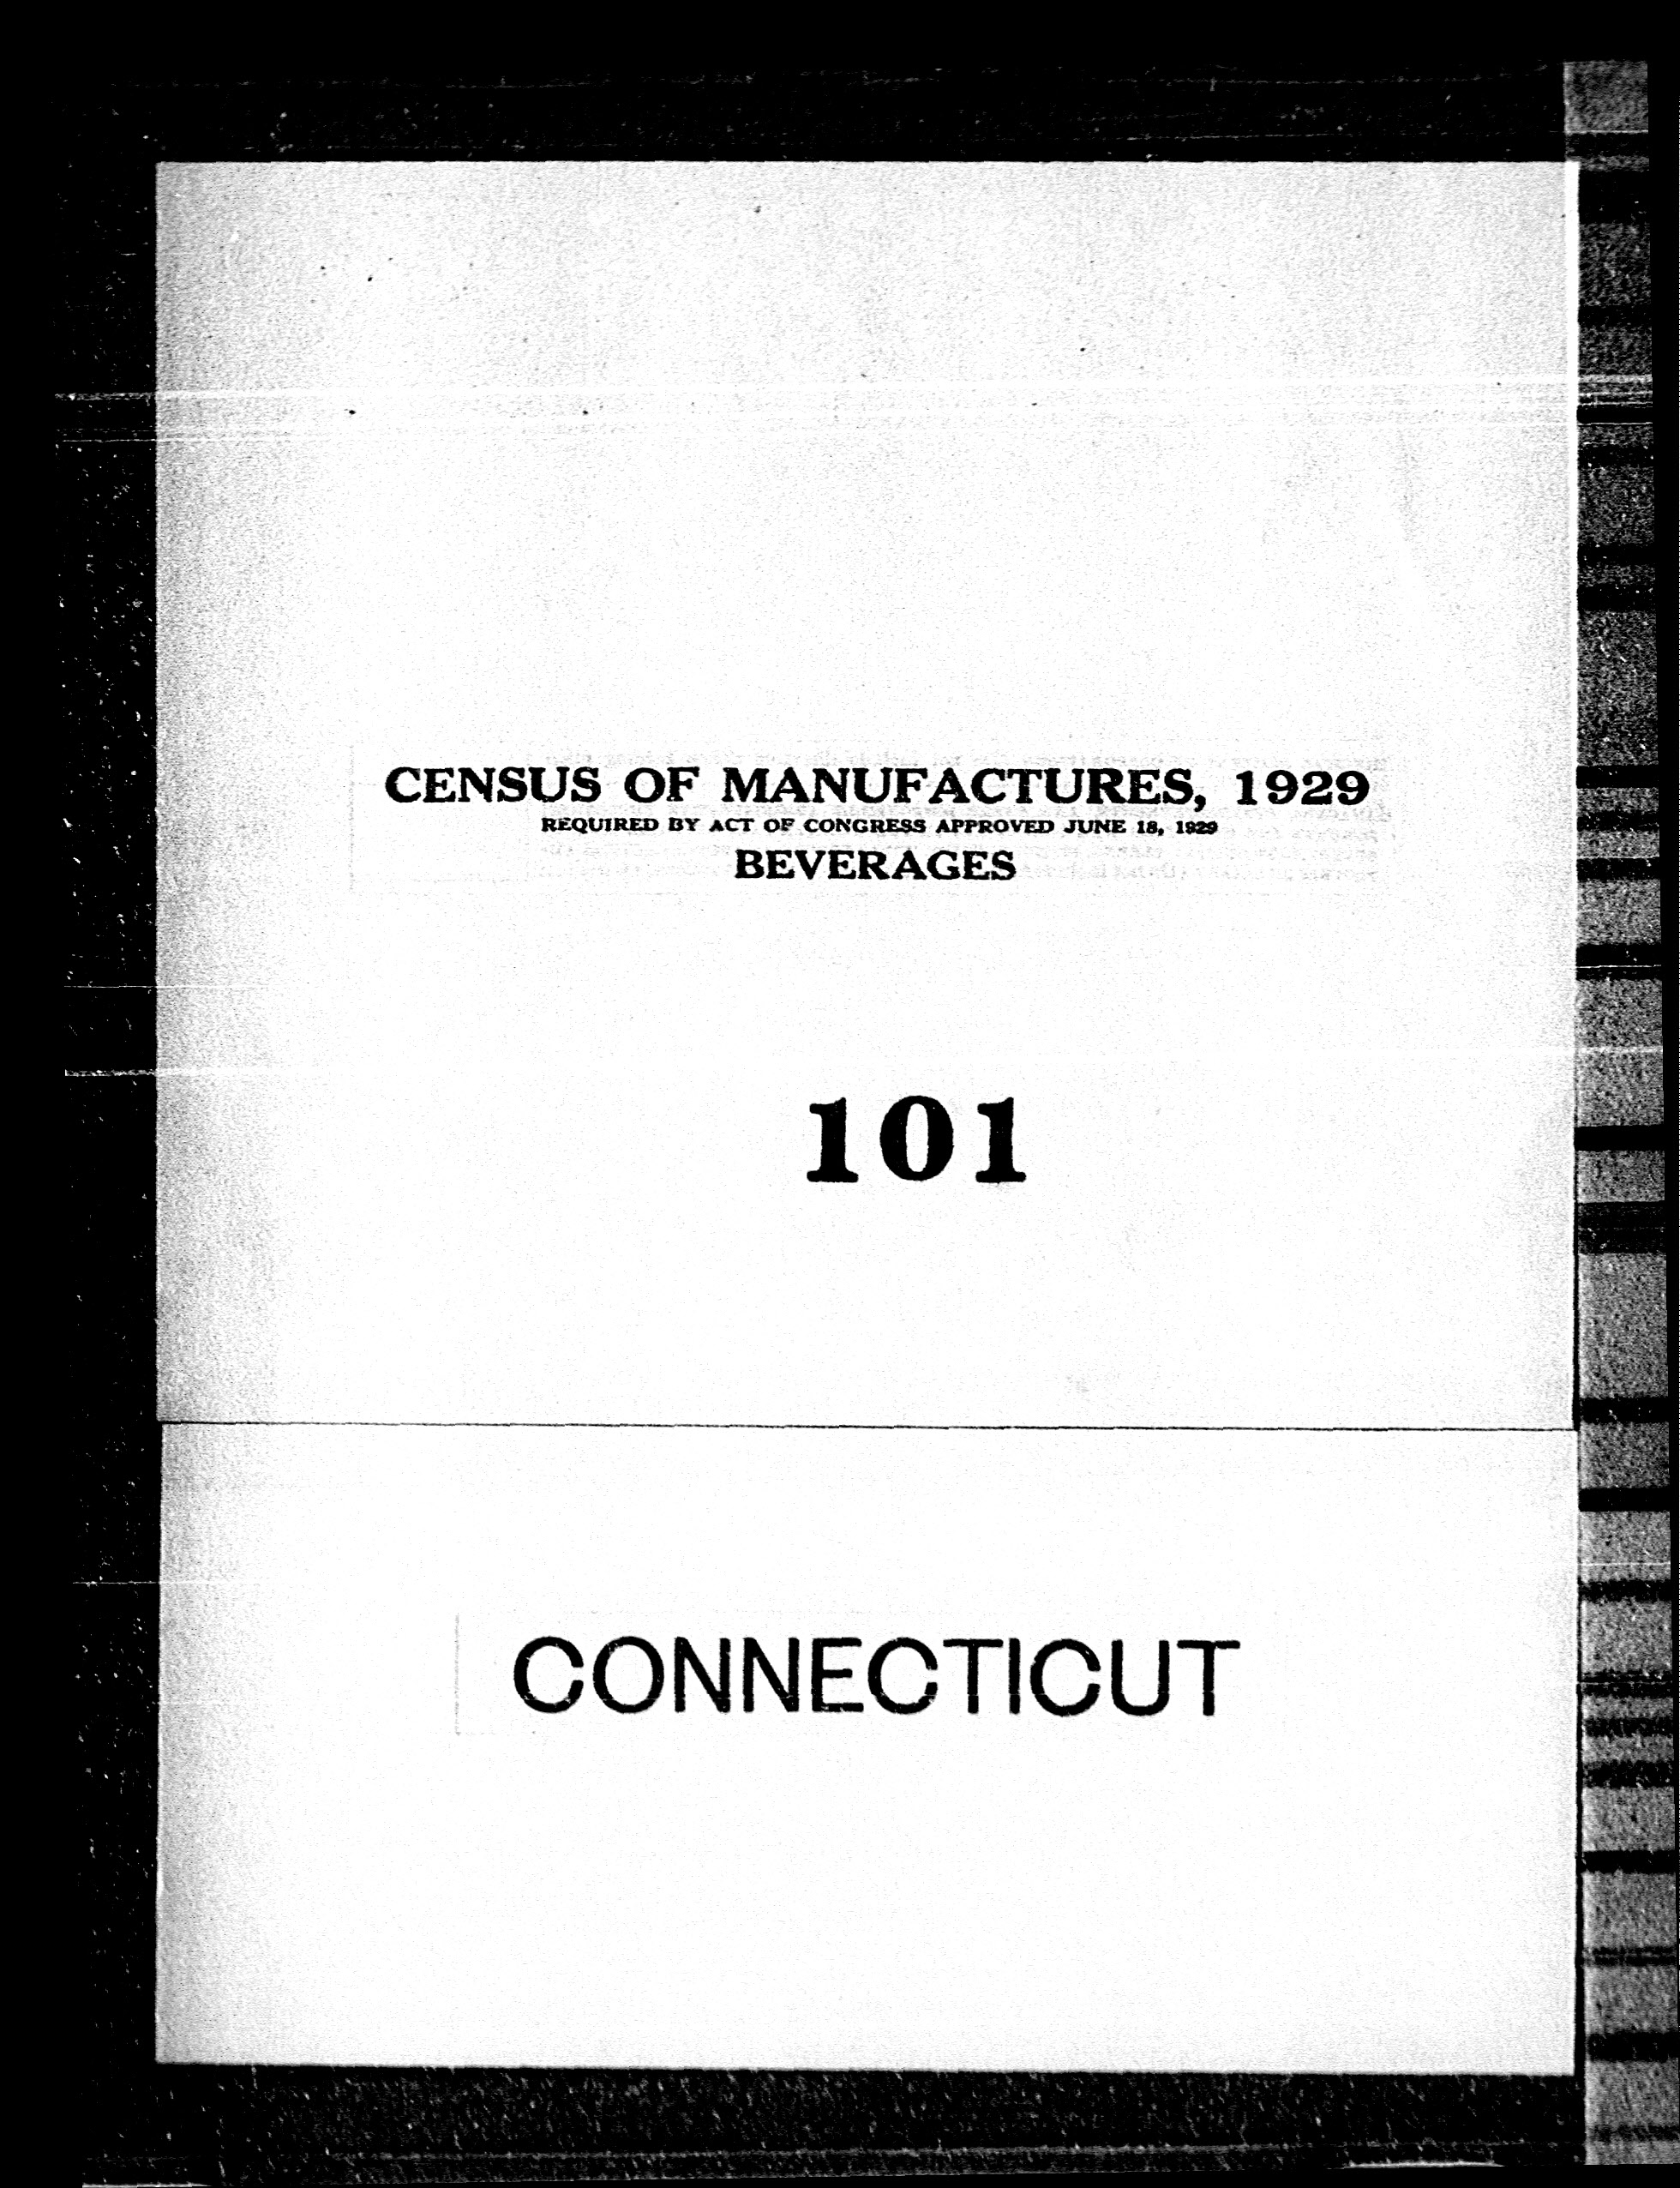 Connecticut: Industry No. 101 - Beverages